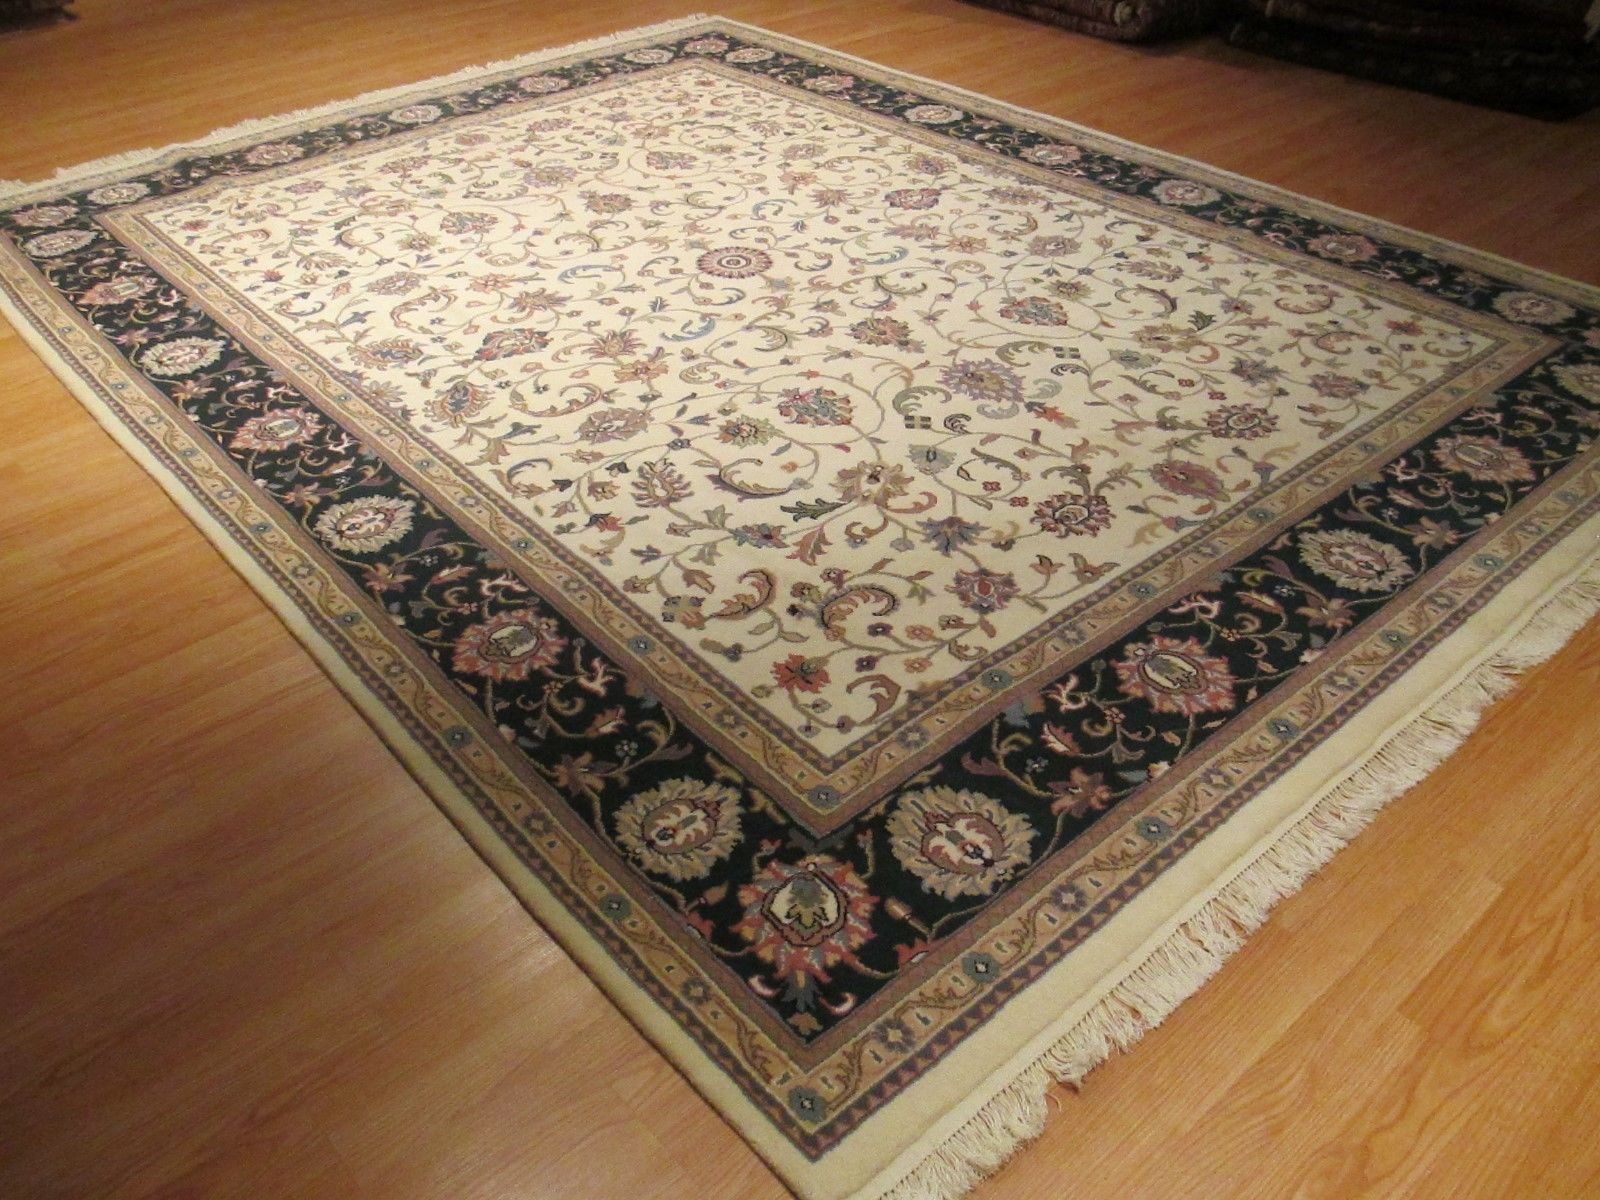 Professional Area Rug Cleaning In Orlando Florida